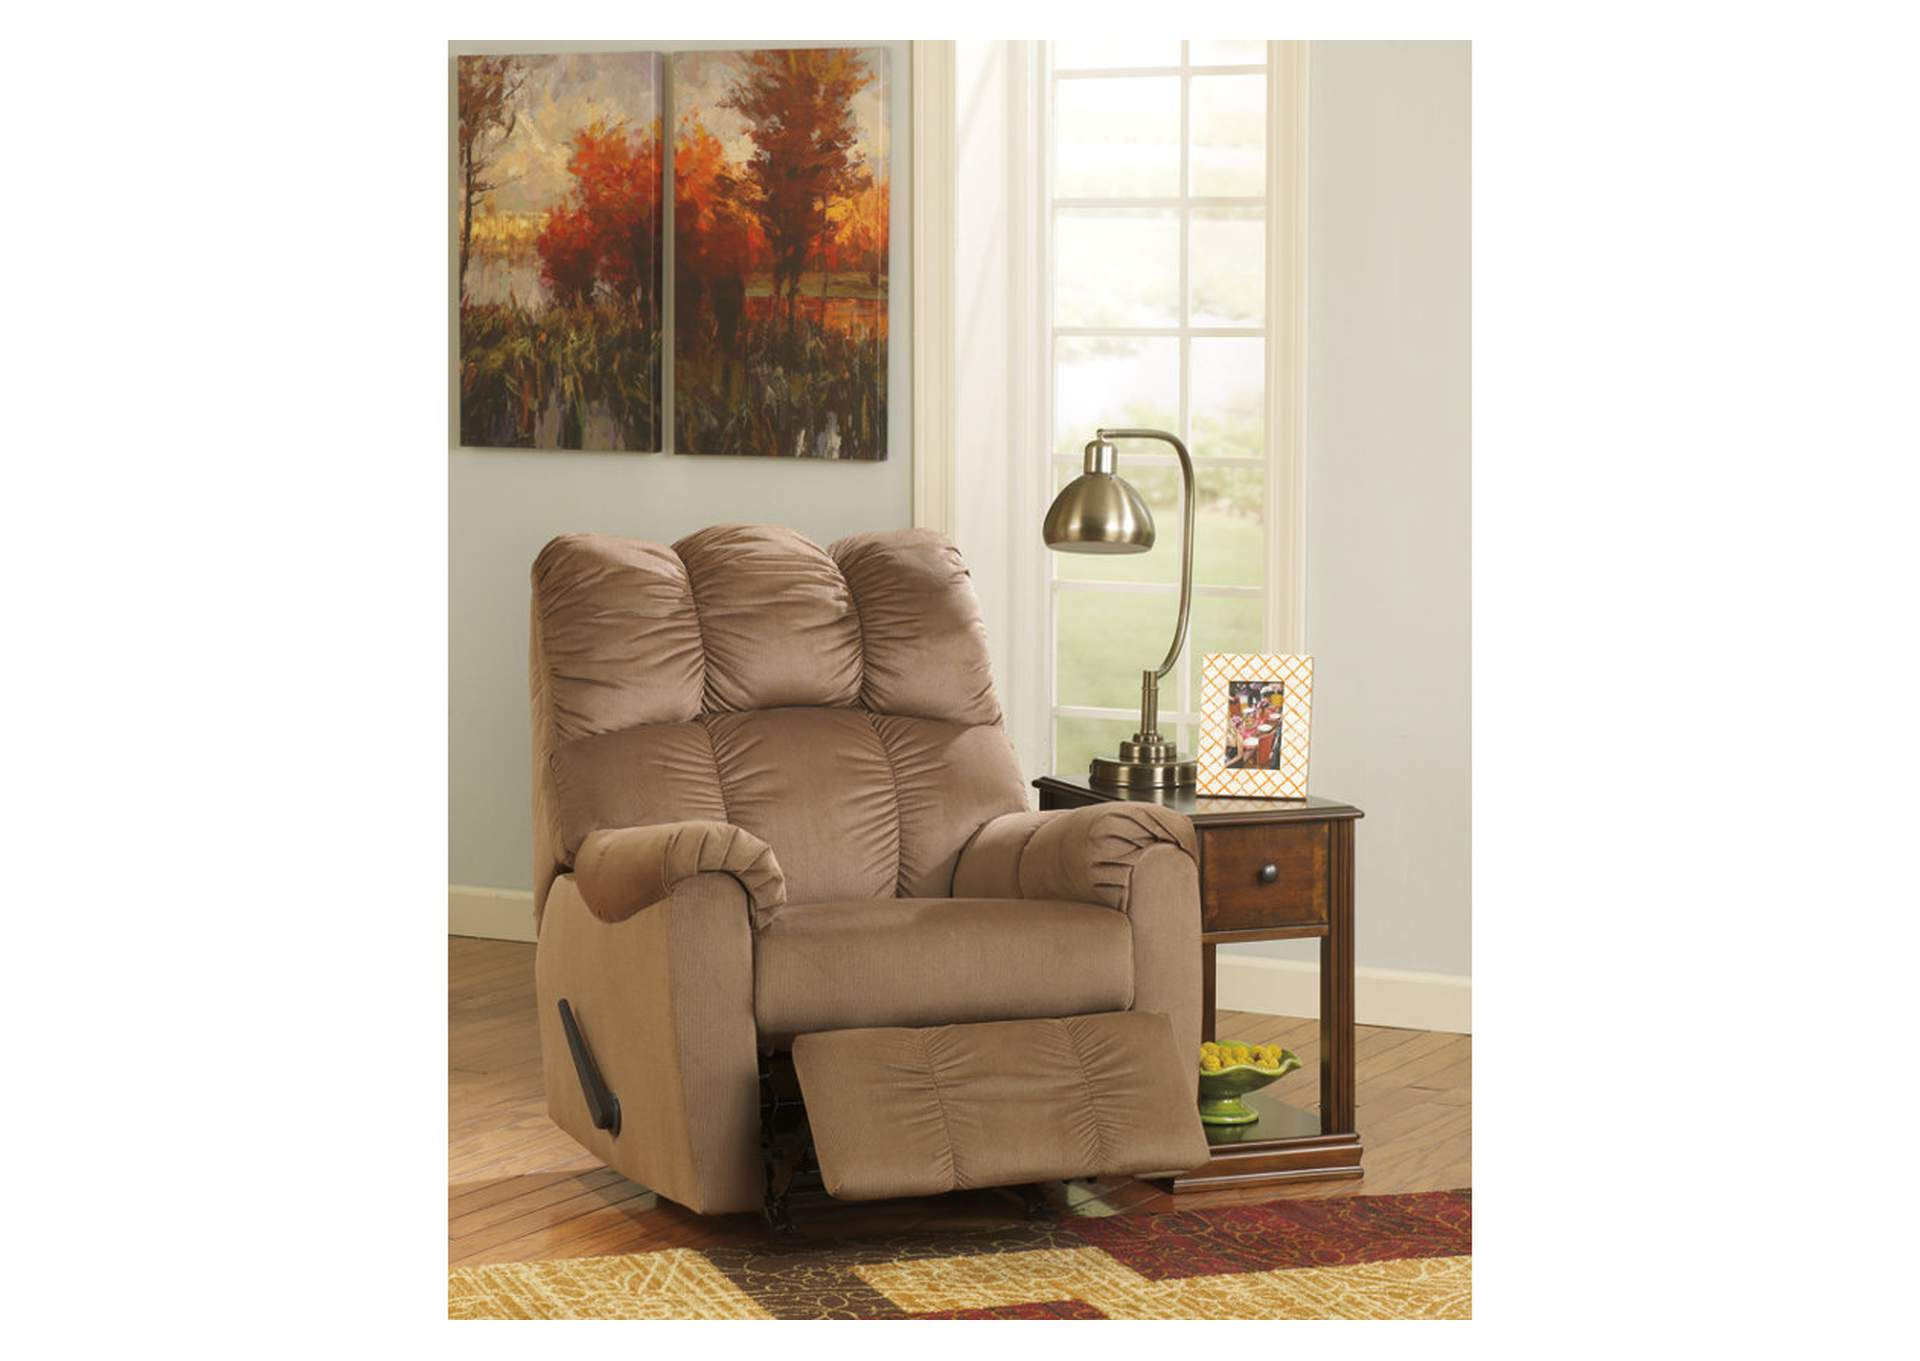 Davis home furniture asheville nc raulo mocha rocker recliner Davis home furniture asheville hours